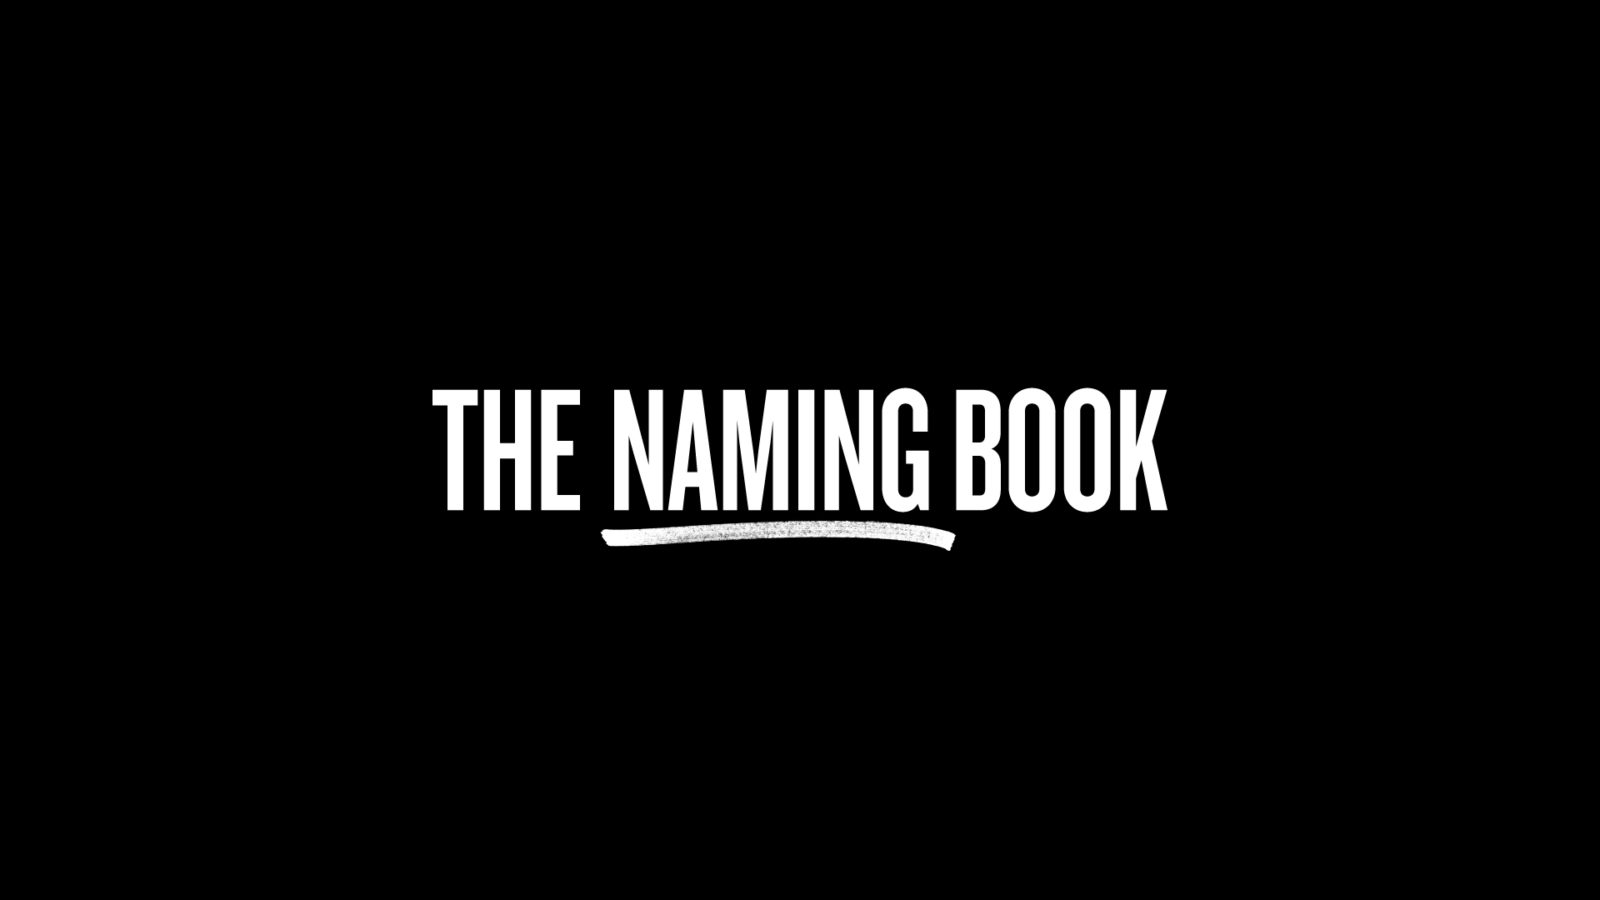 The Naming Book Title Design